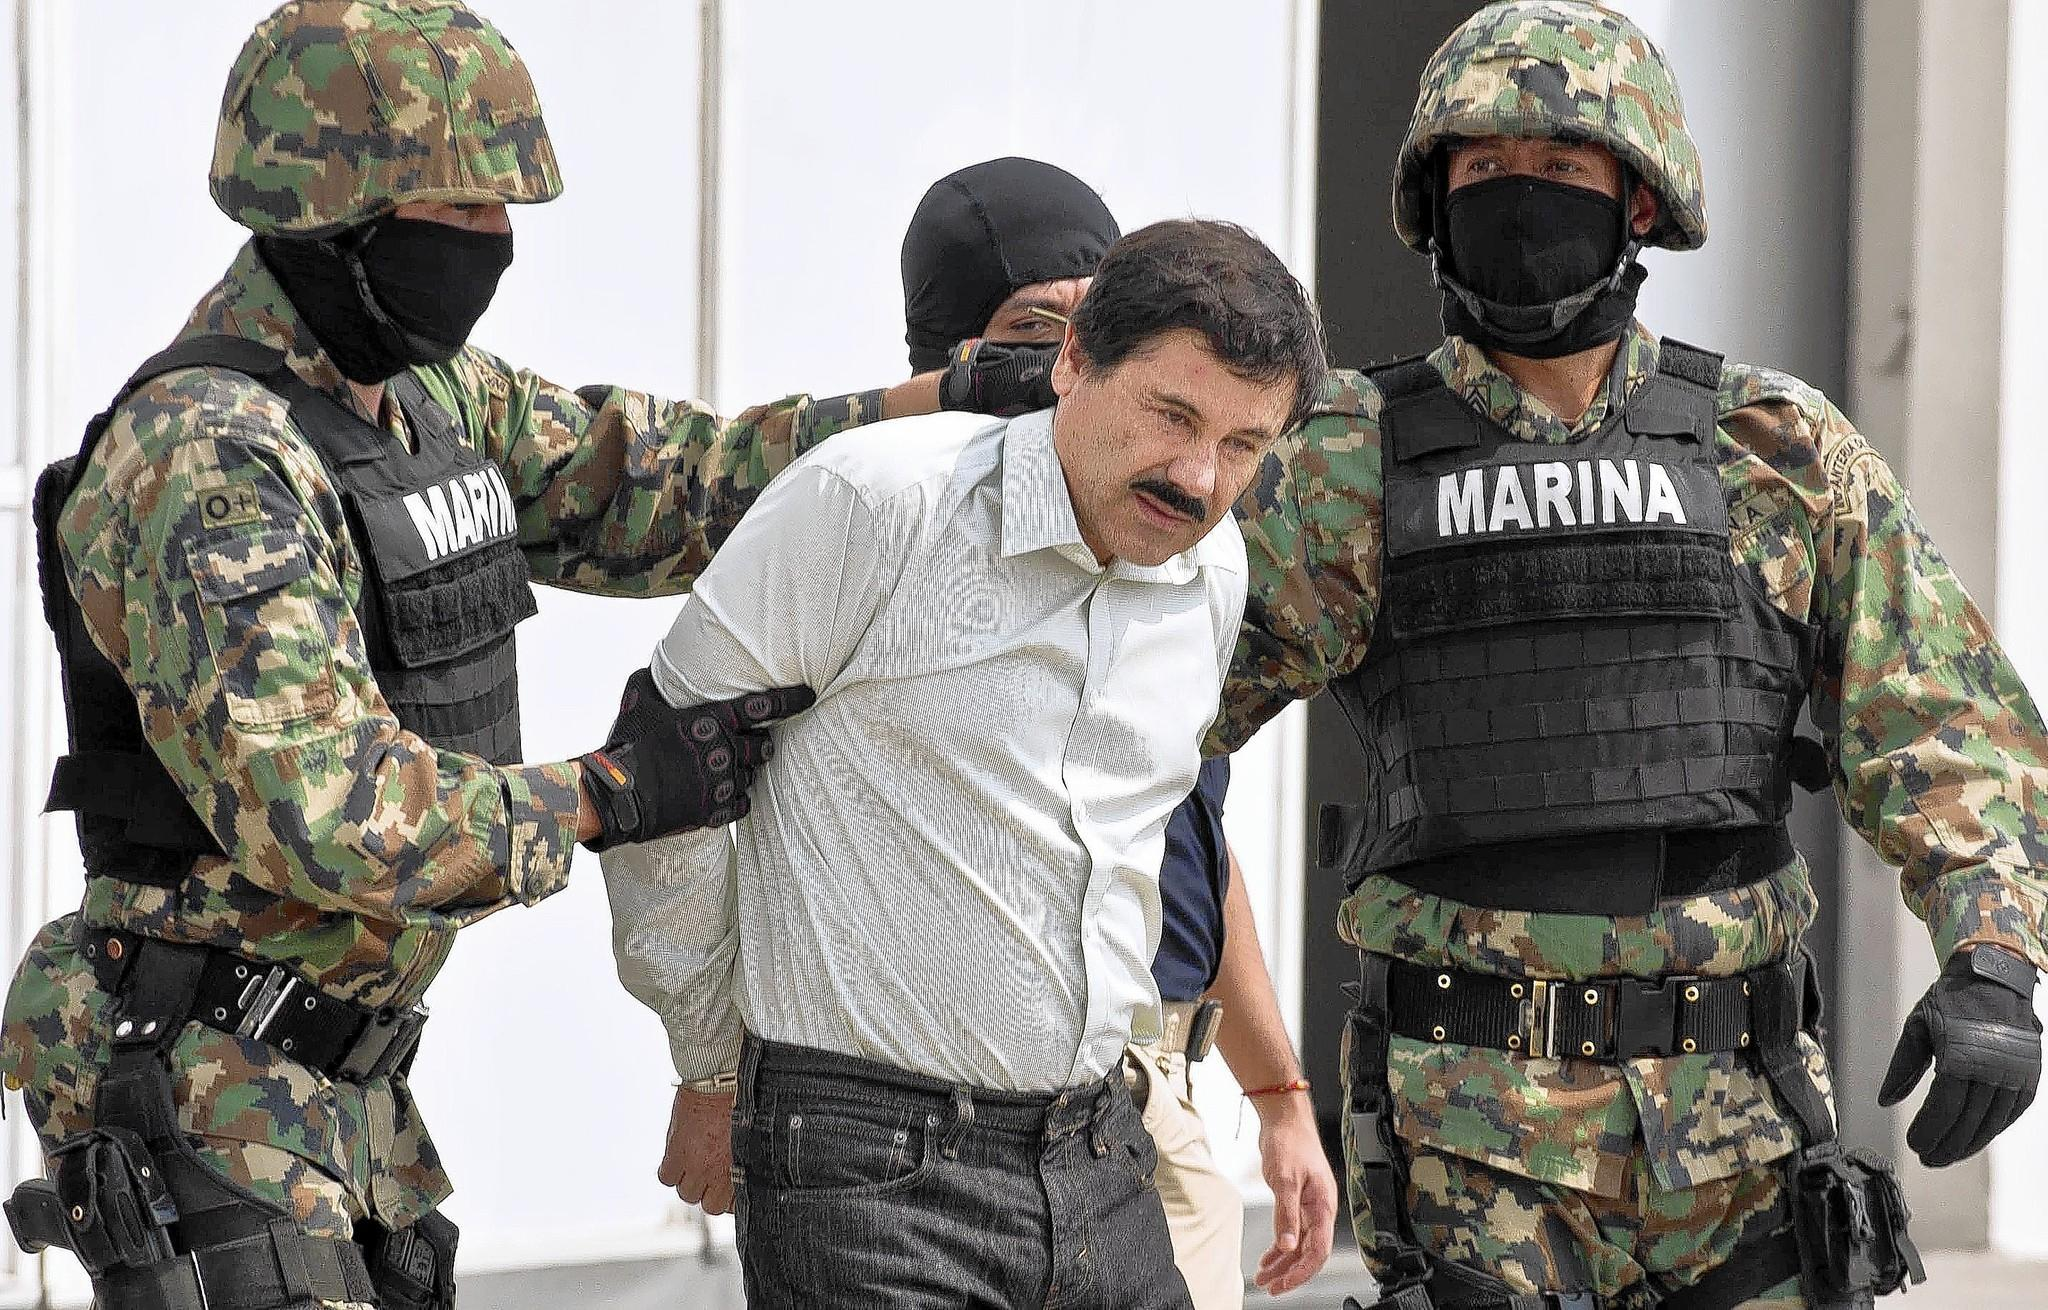 """Mexican drug trafficker Joaquin """"El Chapo"""" Guzman is paraded in front of the media by Mexican marines in Mexico City. The Sinaloa cartel leader, Mexico's most-wanted fugitive, was arrested at a condominium in Mazatlan."""